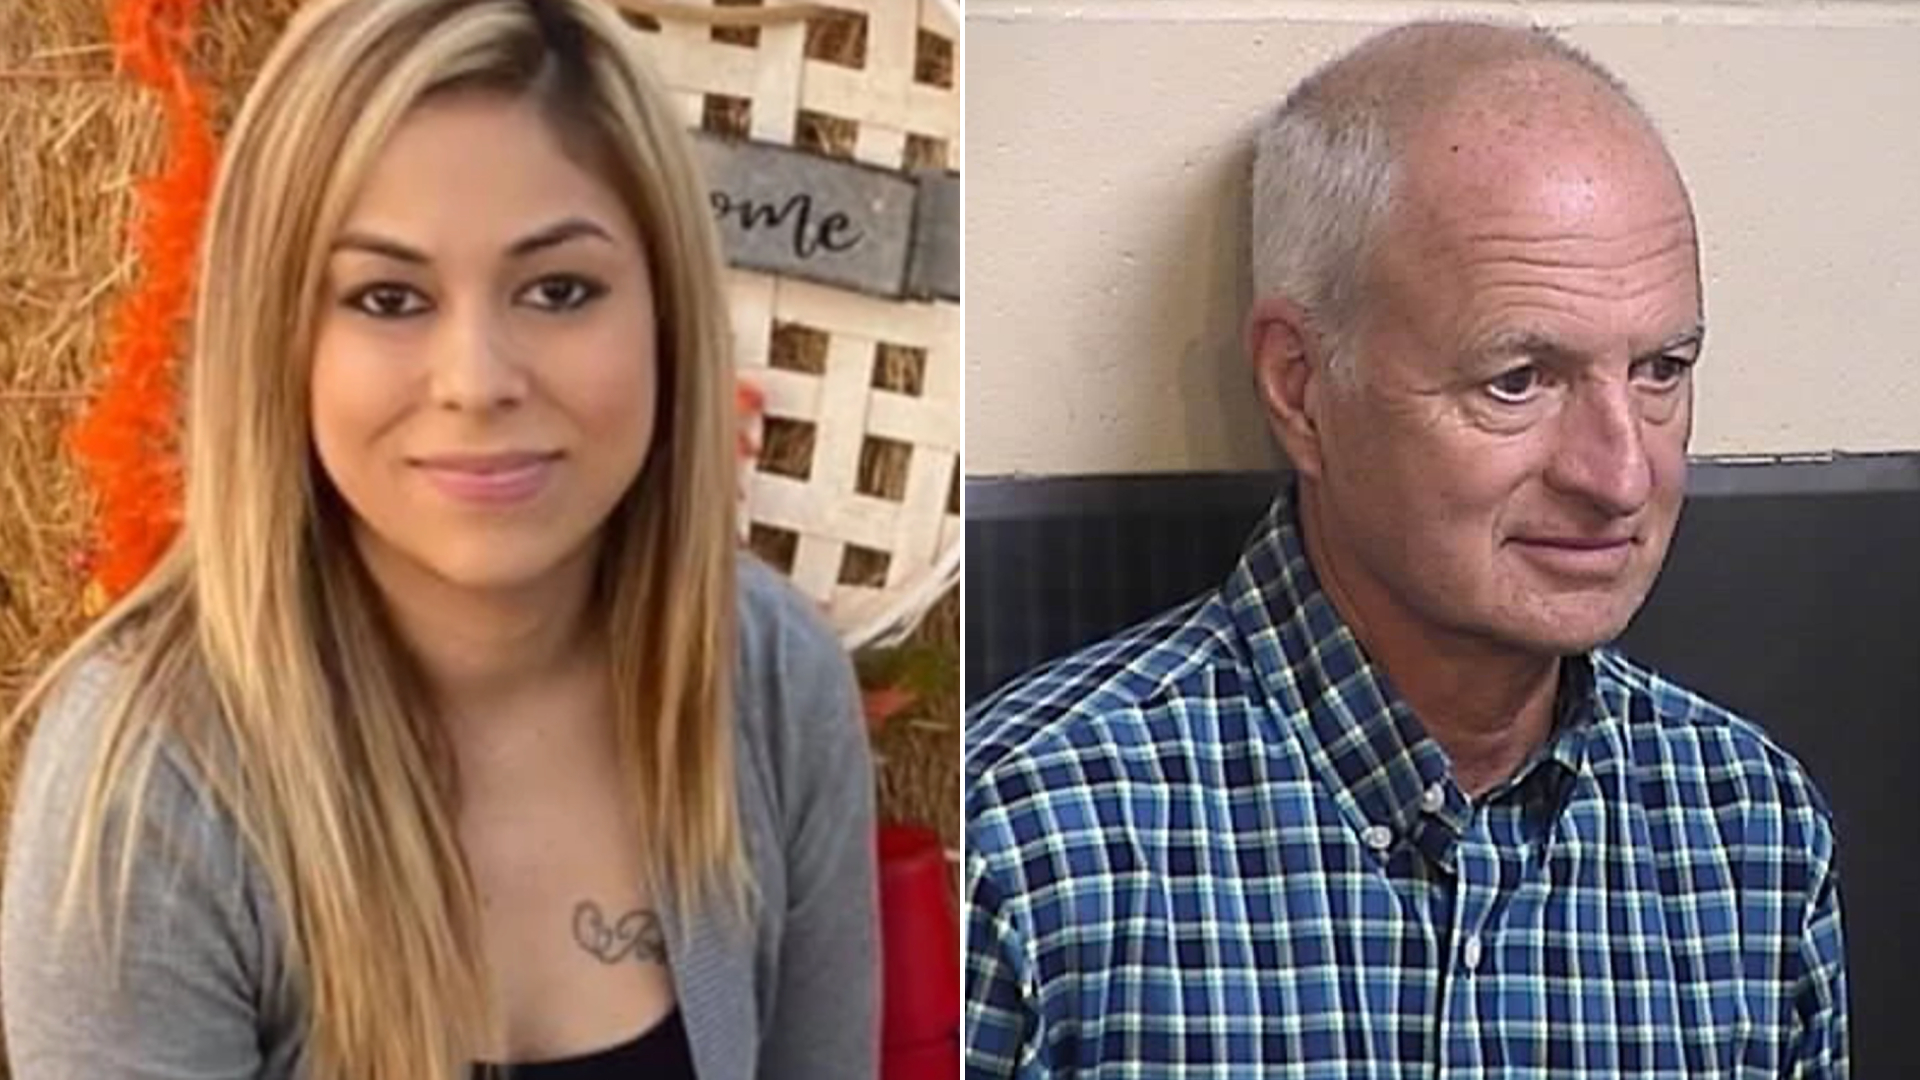 Juliana Ramos, left, and James Comazzi are seen in photos provided by family and authorities to KGPE/KSEE.